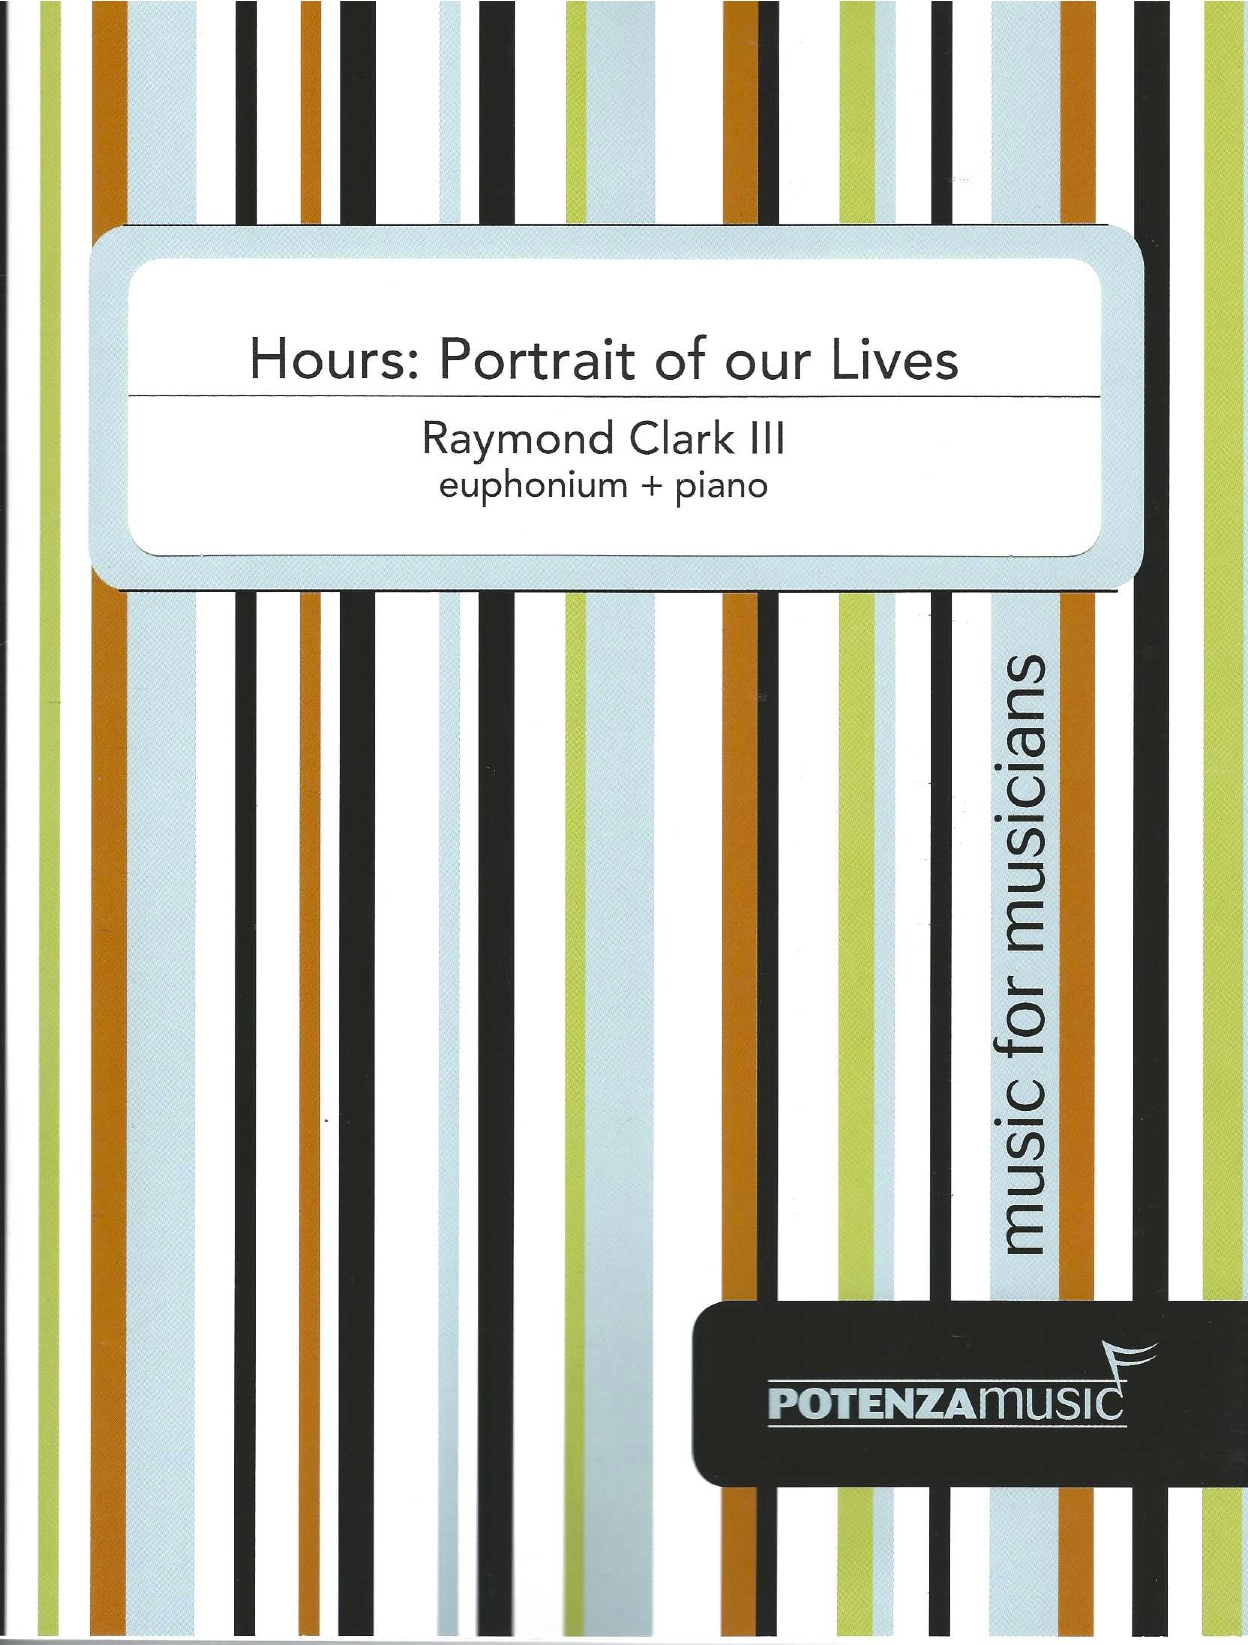 Hours: Portrait of our Lives - Raymond Clark III - Euphonium and Piano